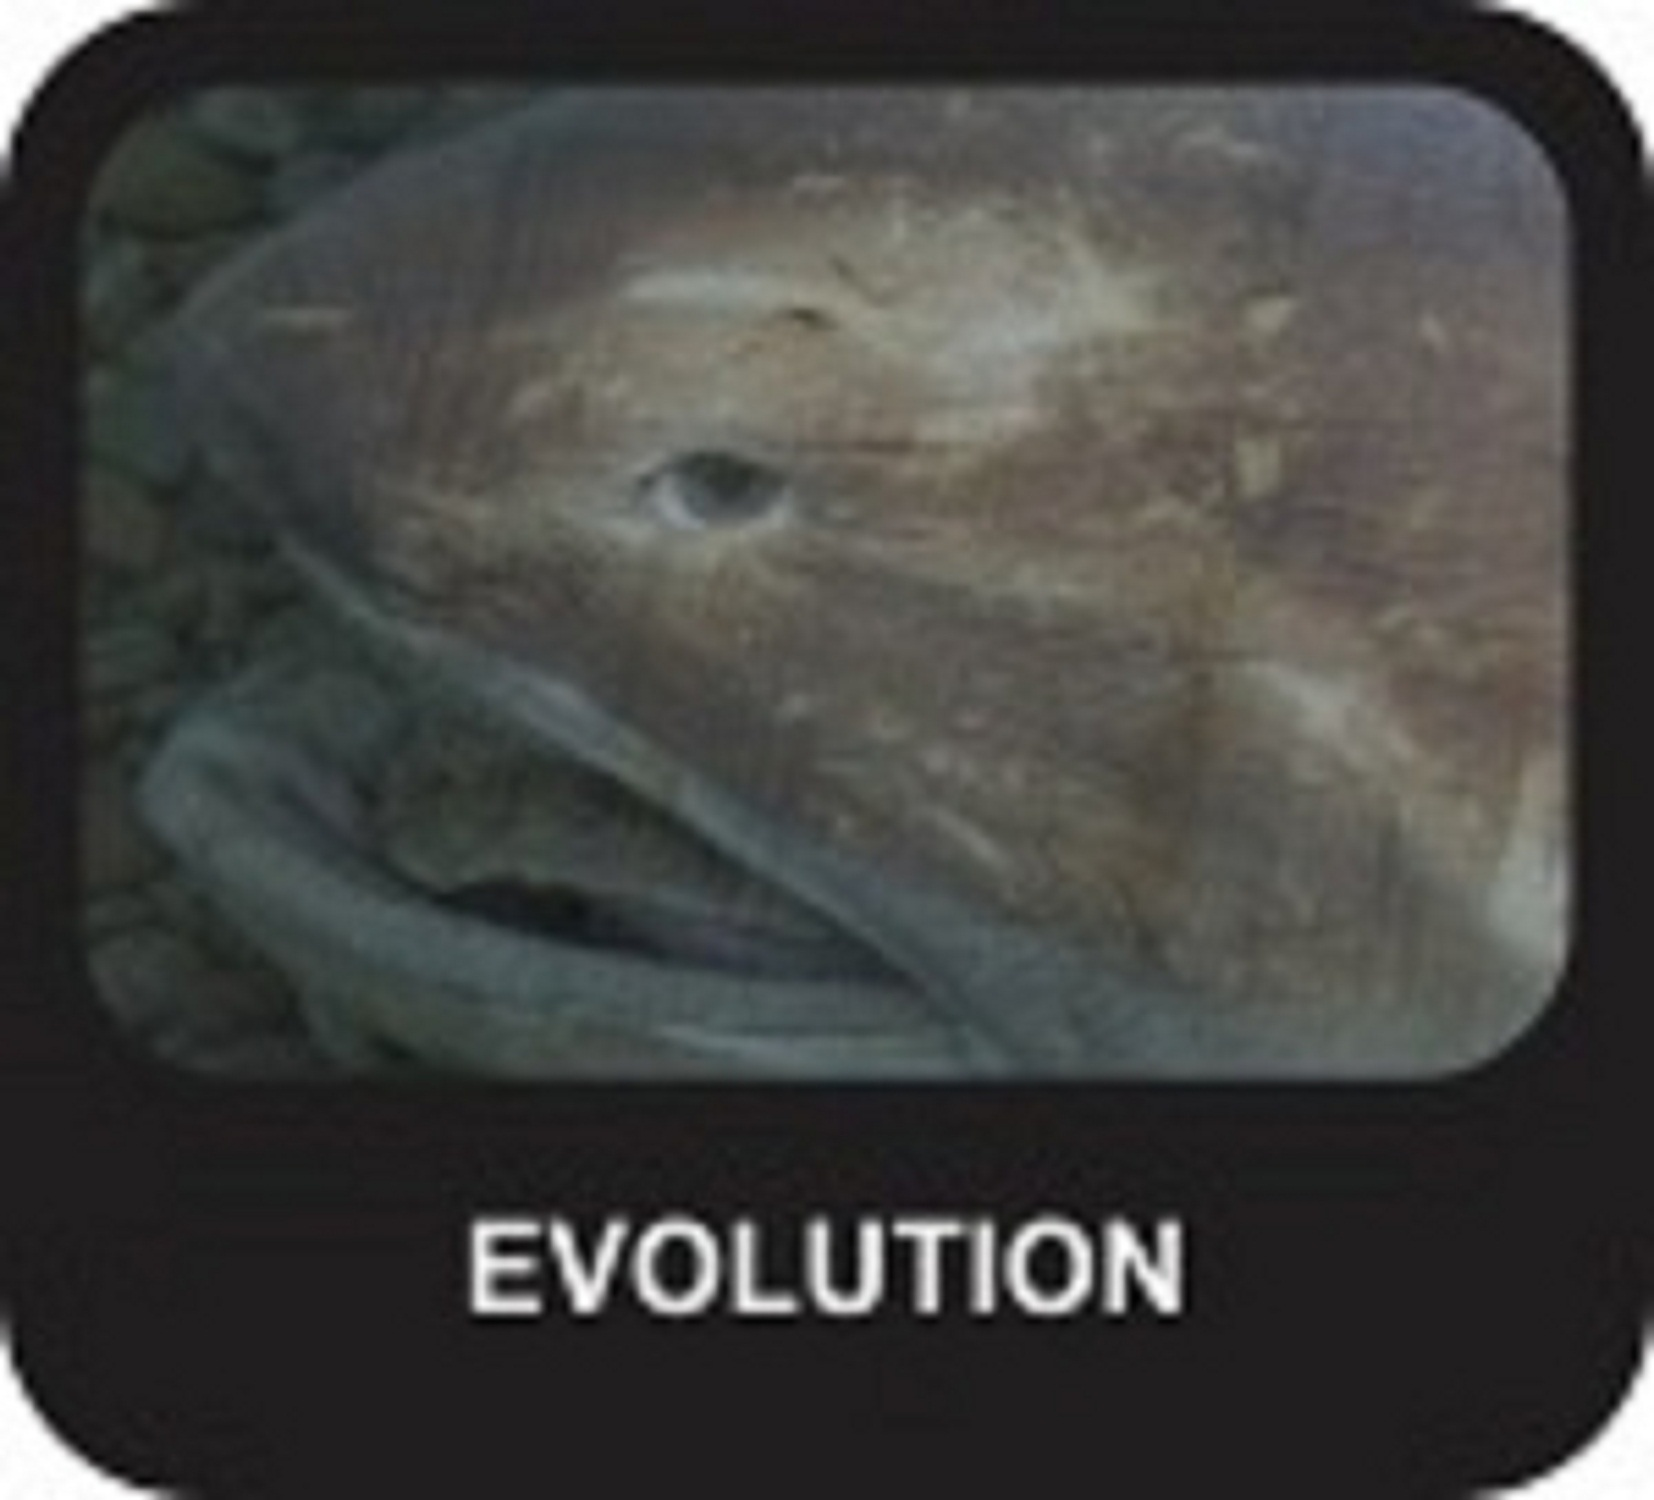 the history and evolution of sharks Sharks are one of evolution's most enduring success stories although they have few hard parts that can survive the insults of geologic time, sharks have left a long and rich fossil record some 2,000 to 3,000 species of fossil shark have been described.